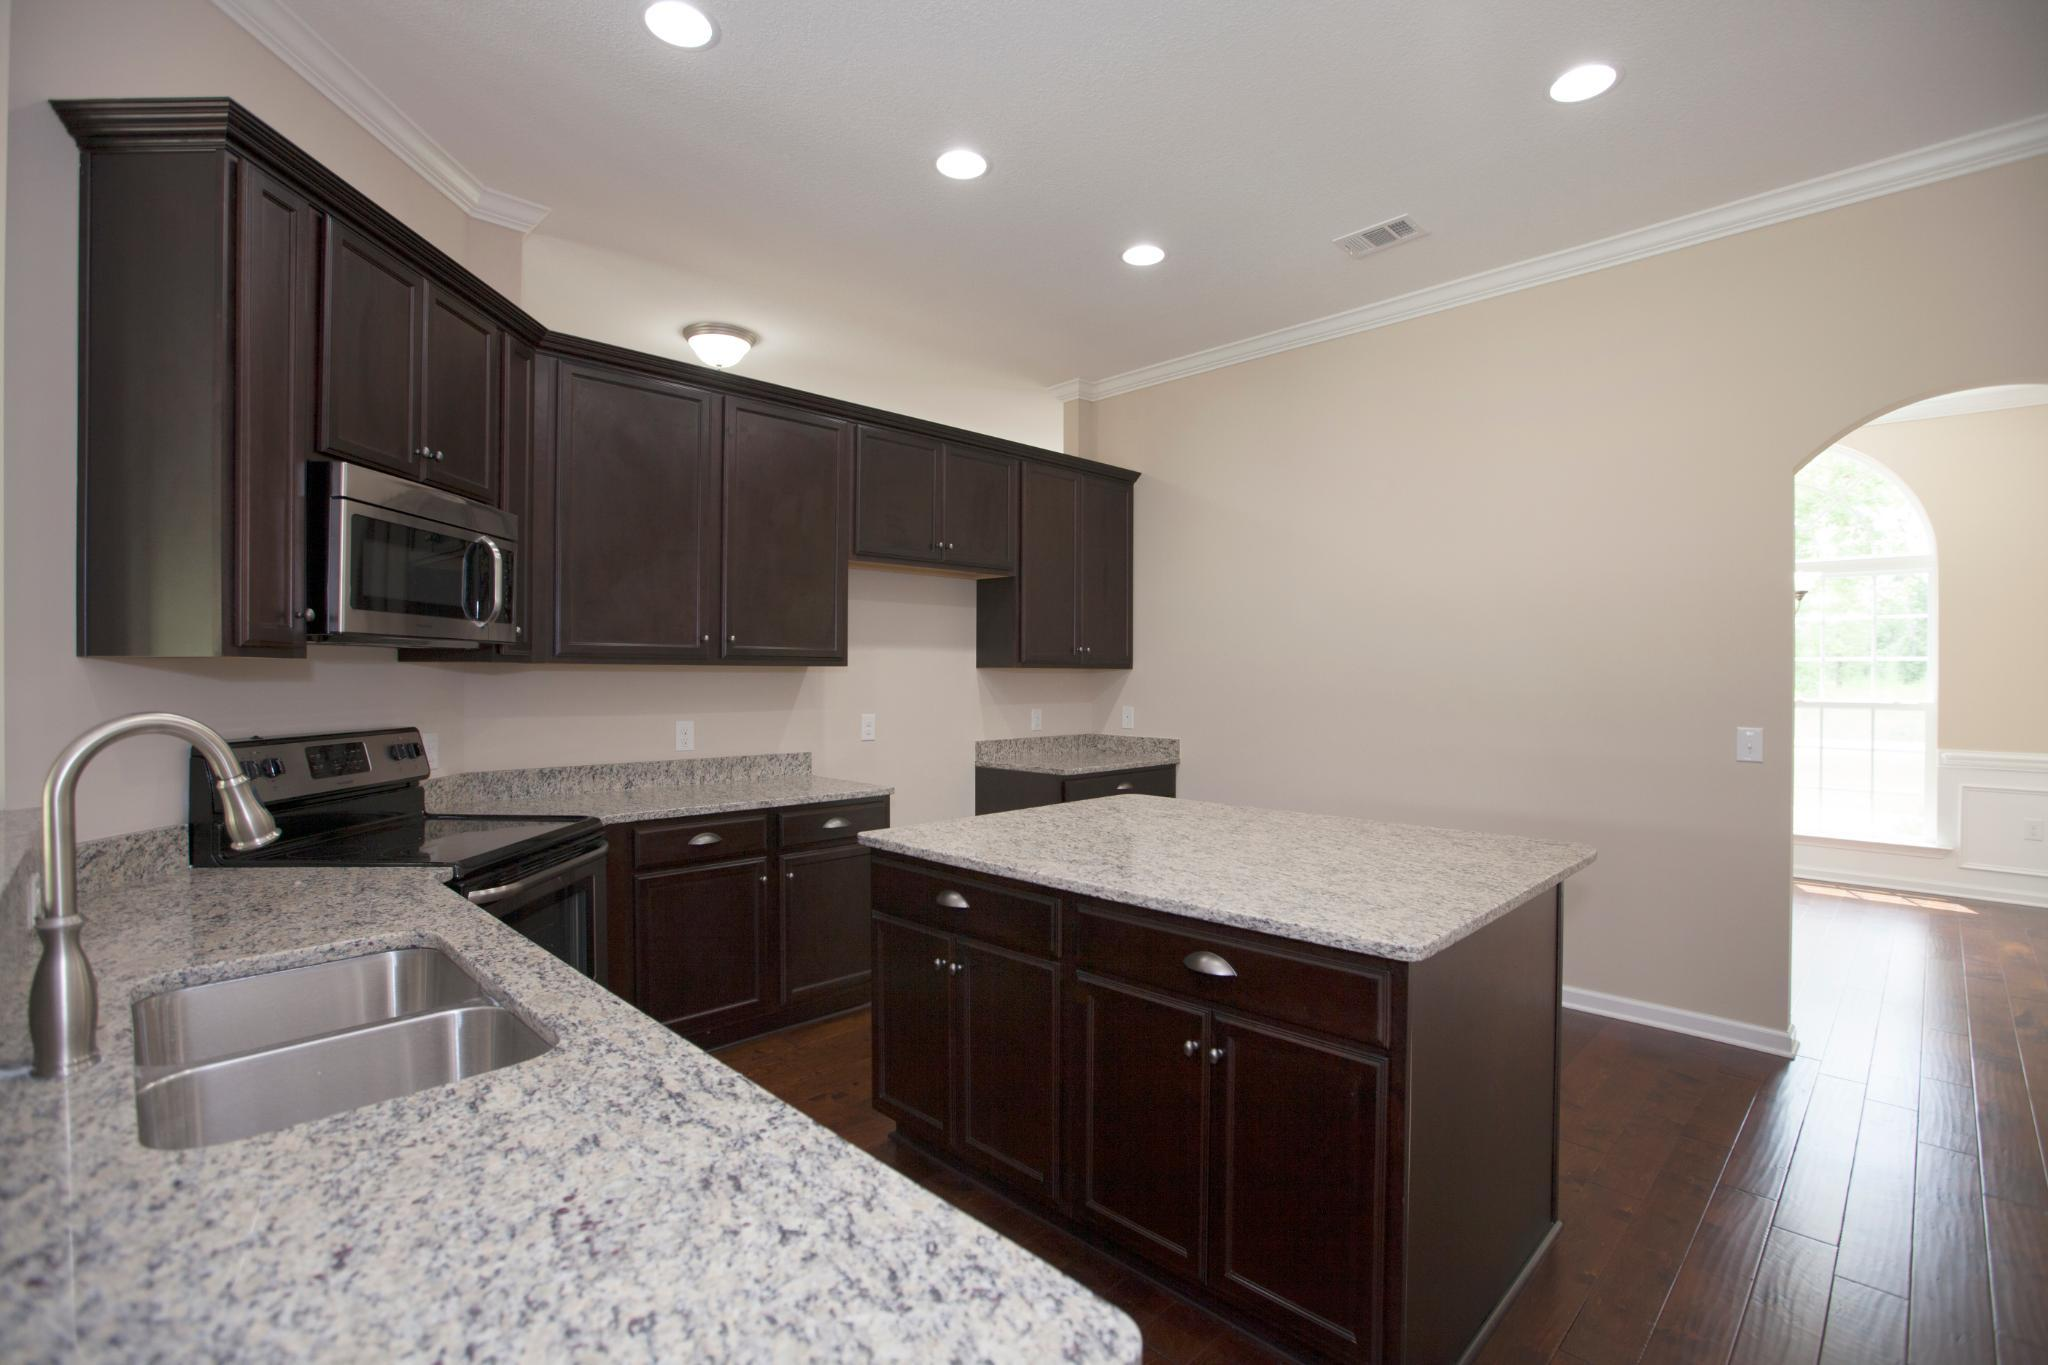 Kitchen featured in the Wakefield By Ernest Homes in Savannah, GA